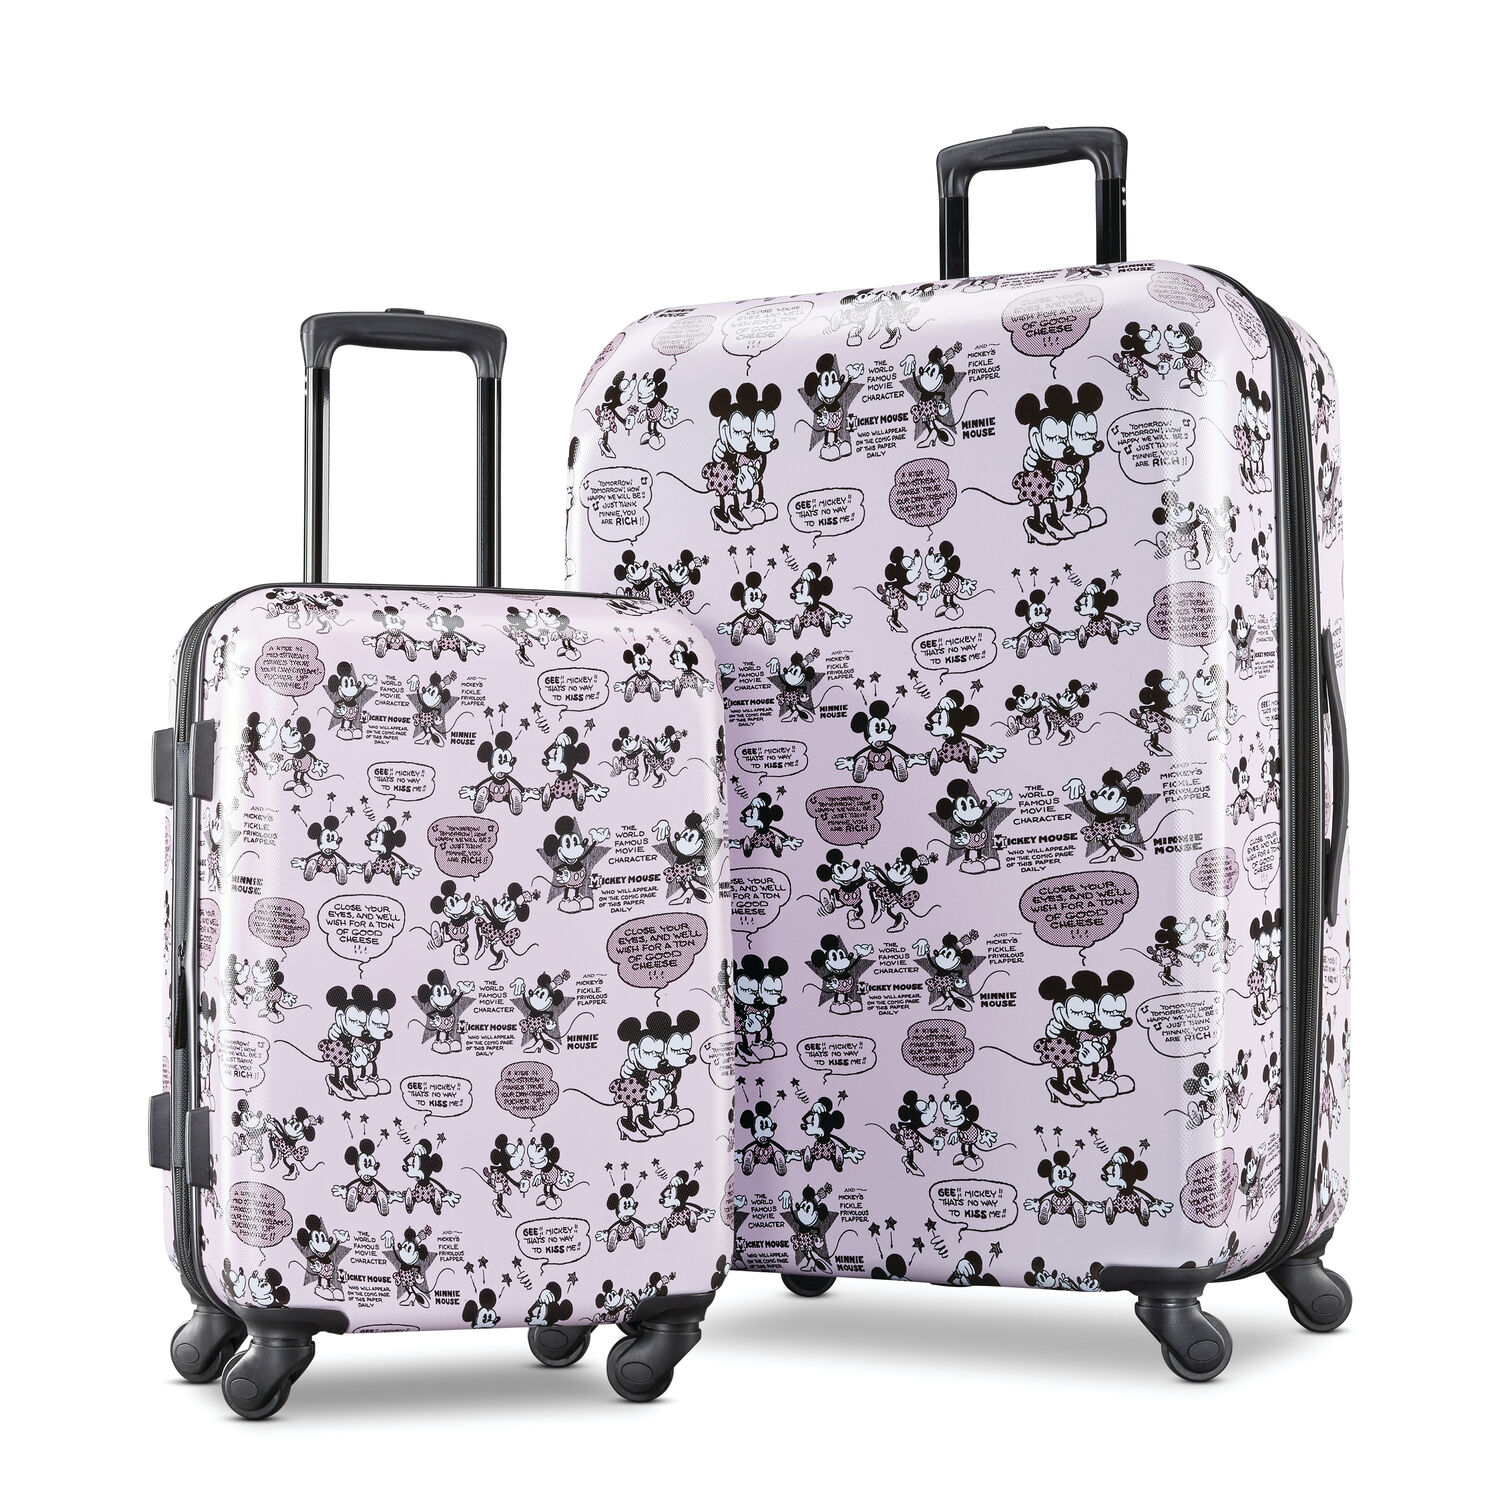 American Tourister Disney Mickey and Minnie 2 Piece Set in the color Mickey/Minnie Kiss.